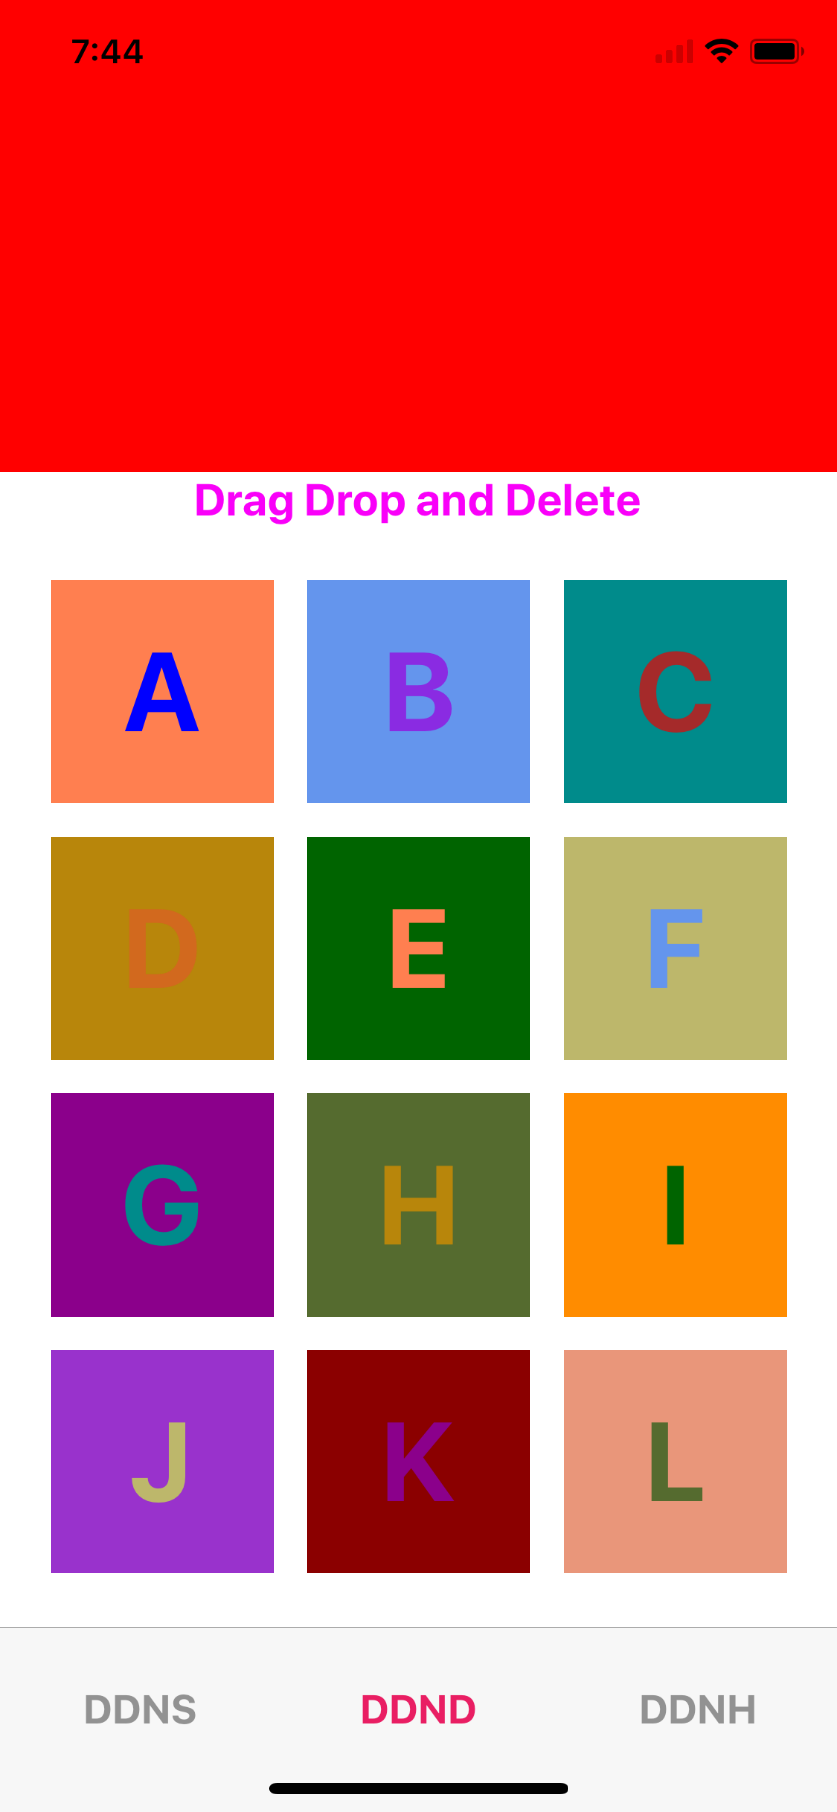 drag drop and delete